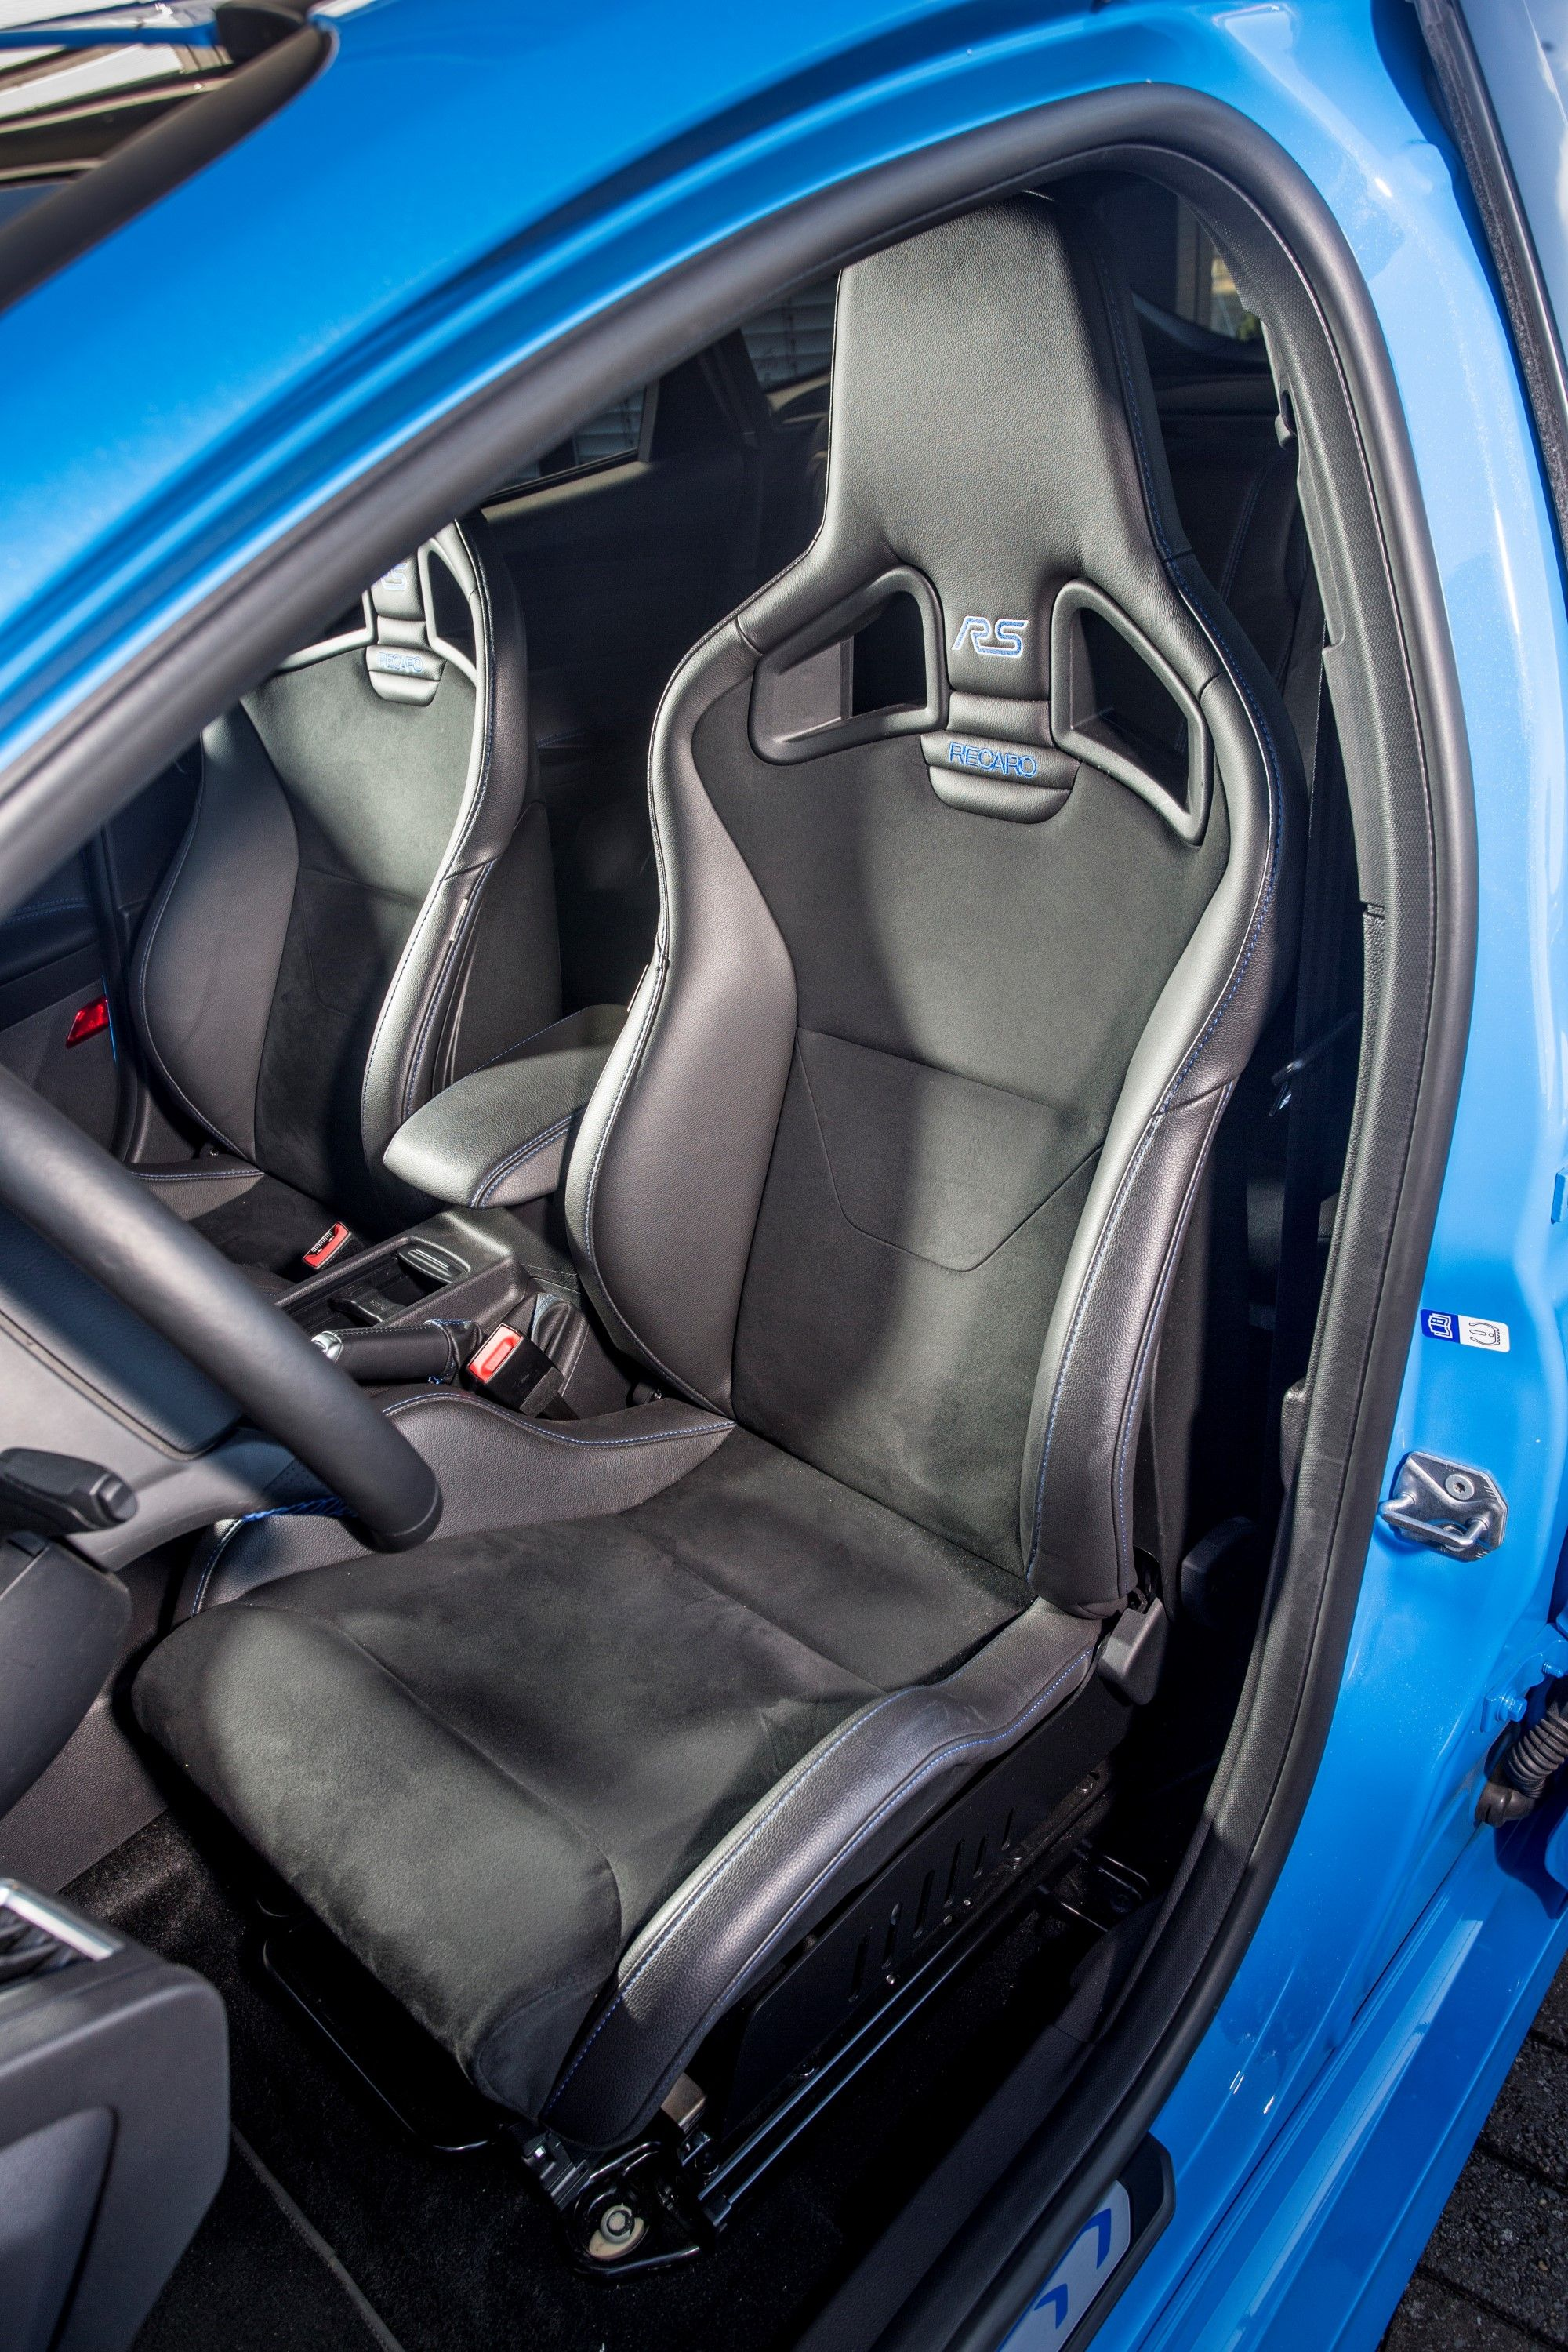 2016 Ford Focus Rs Recaro Shell Seat Focus Rs Ford Focus Ford Focus Rs